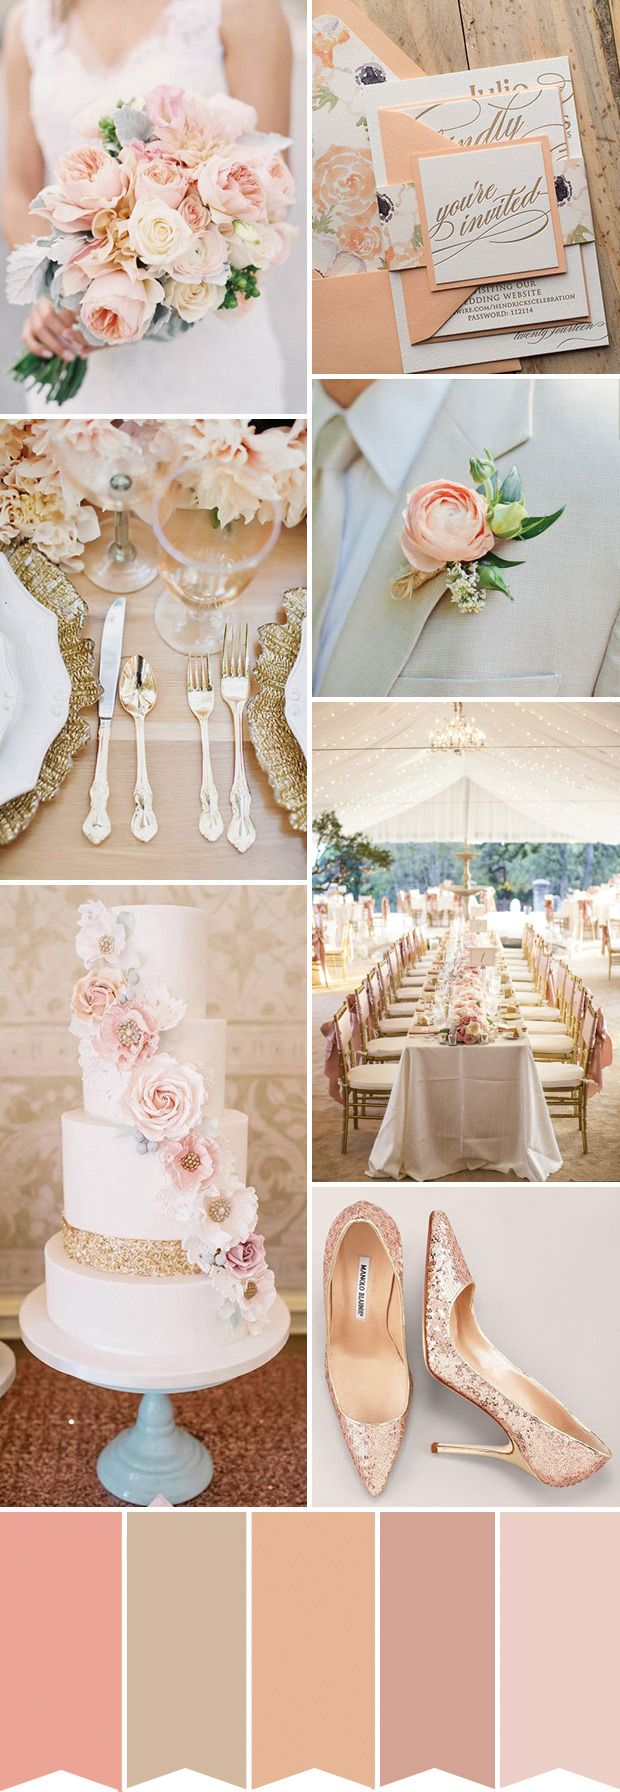 How To Create A Sparkling Peach And Gold Wedding Palette // Www.onefabday.